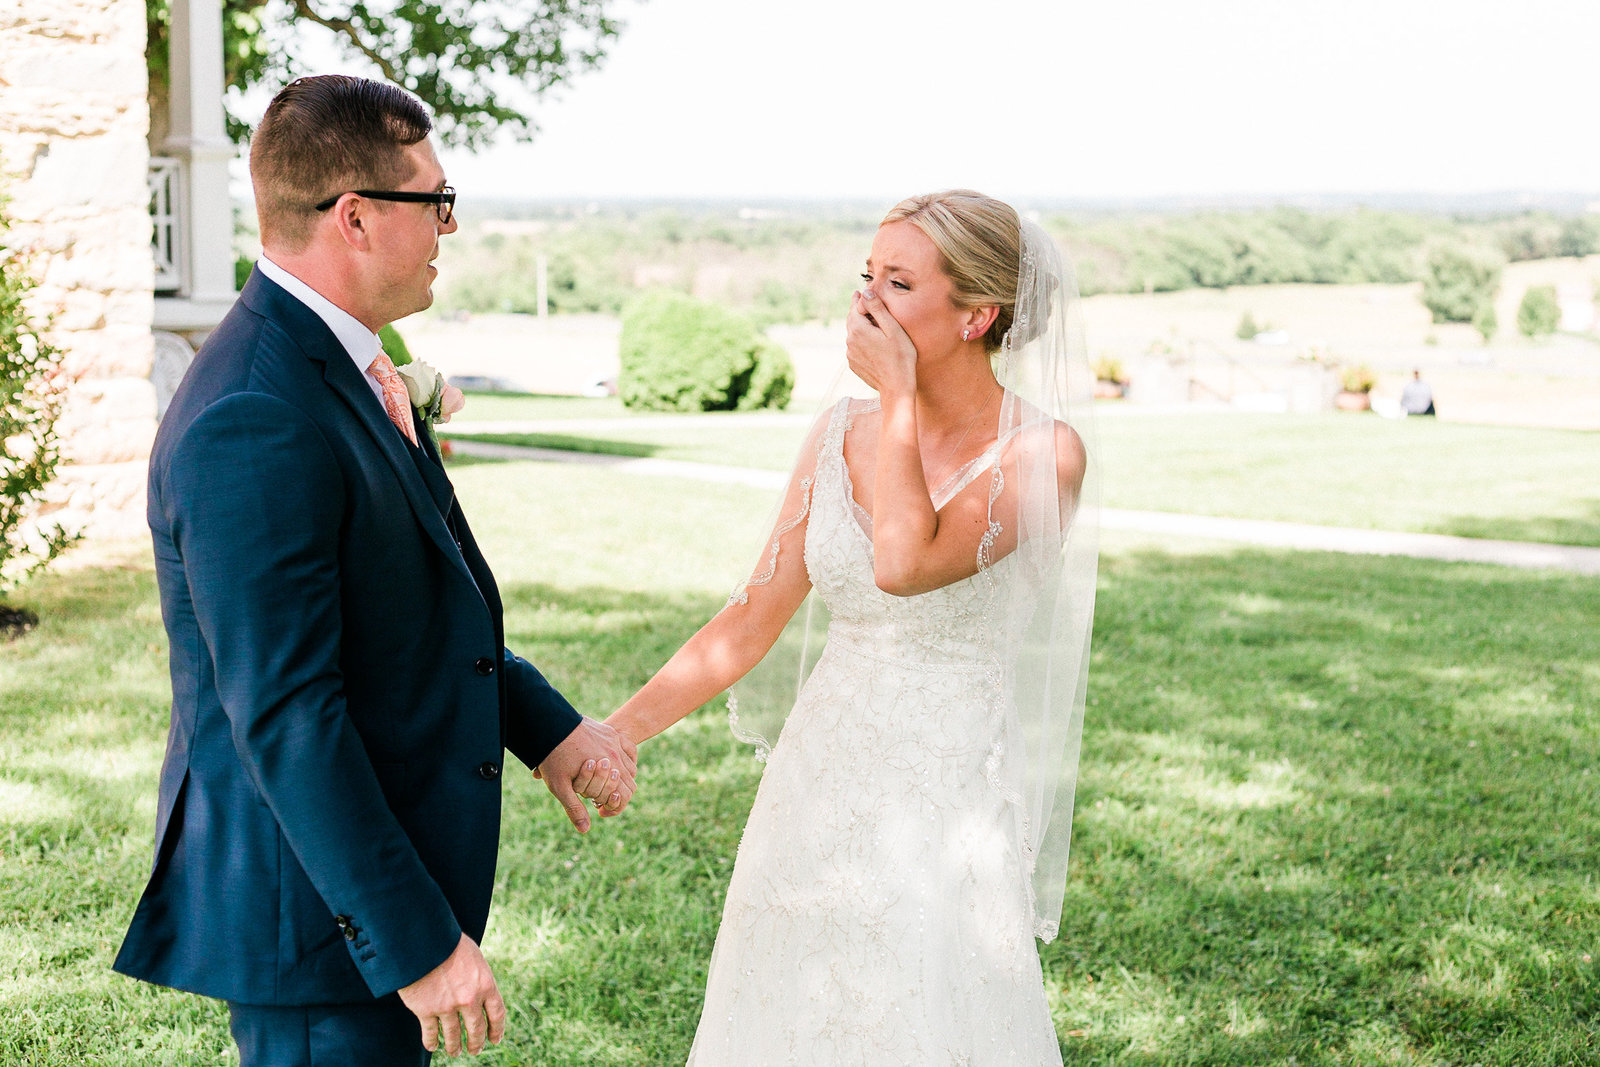 Bride cries as she sees her groom during the first look